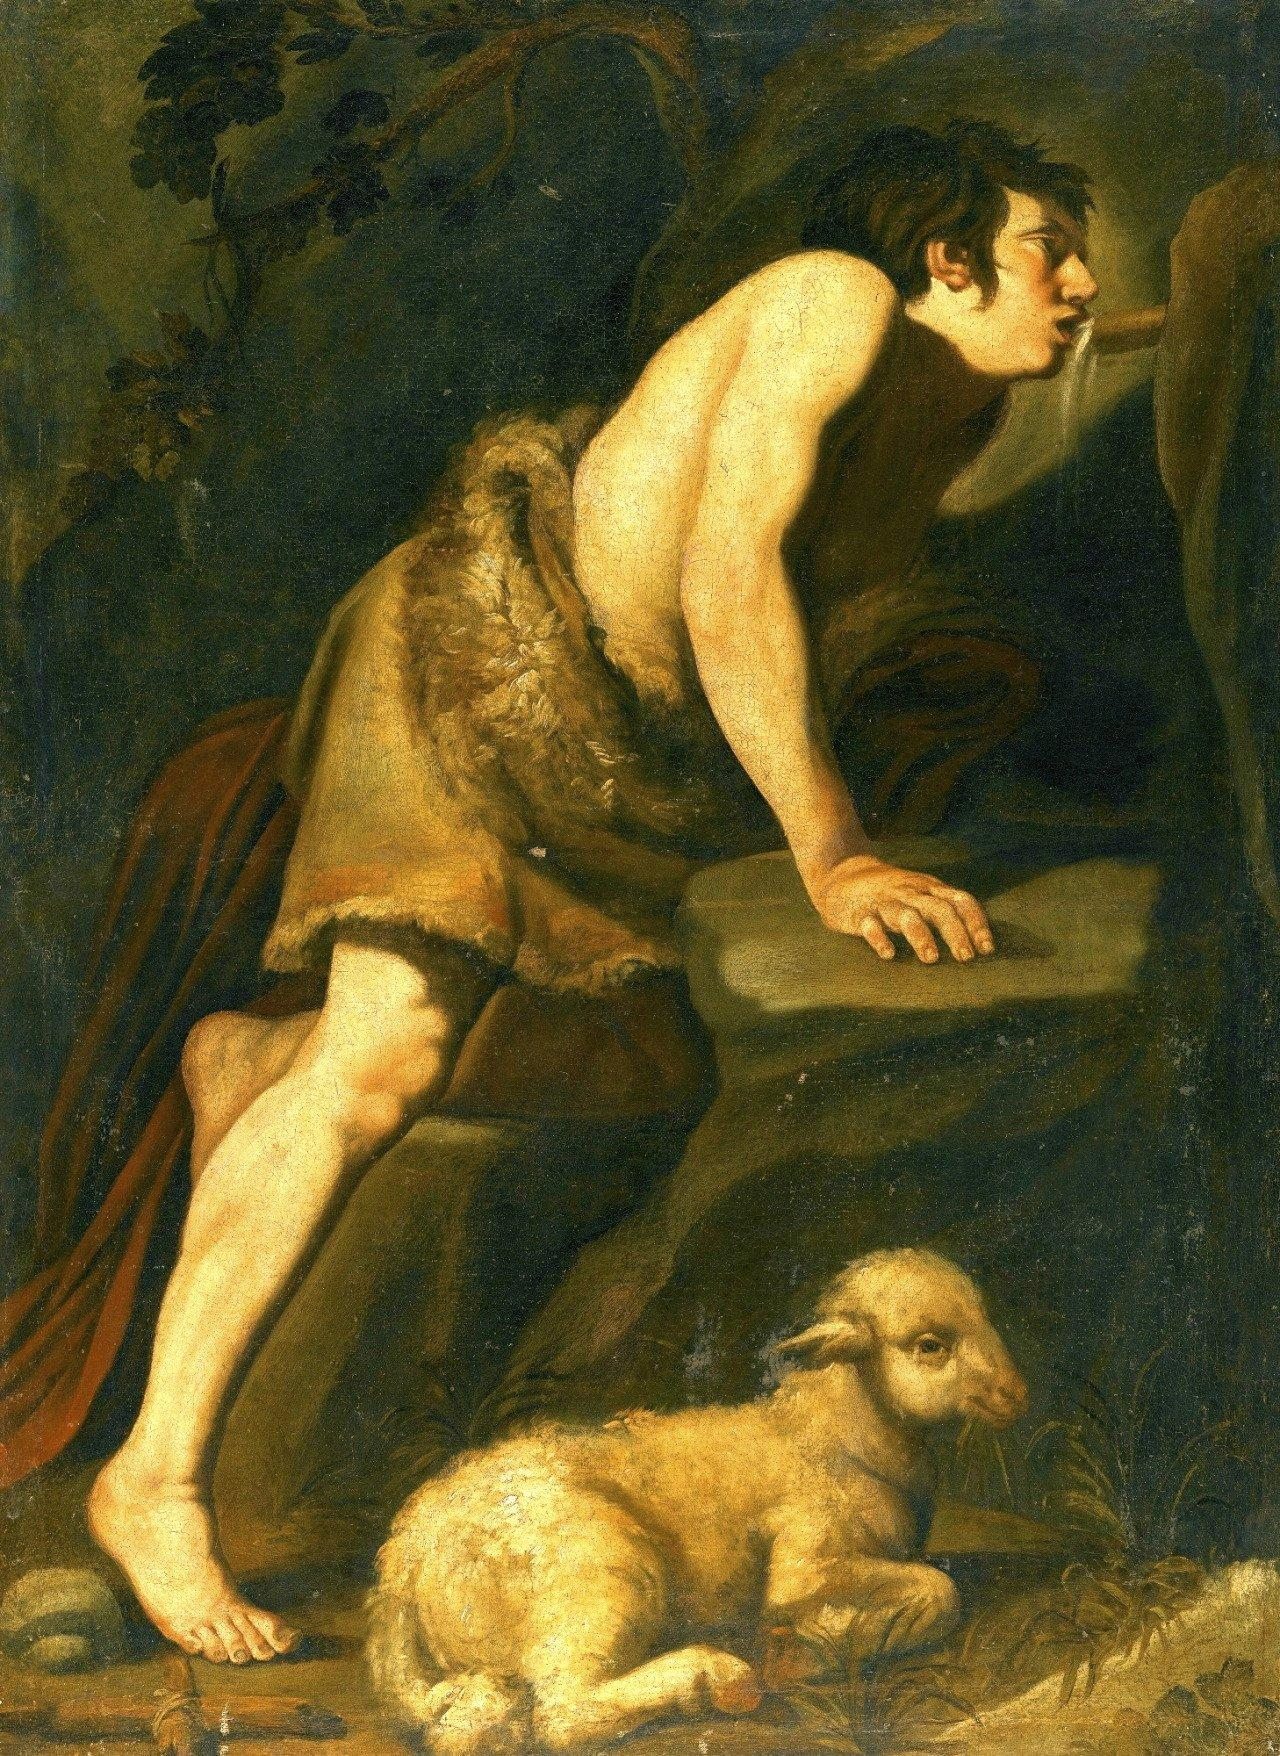 Animal Porn Erotic 17th century gay erotic art . new sex images. comments: 4